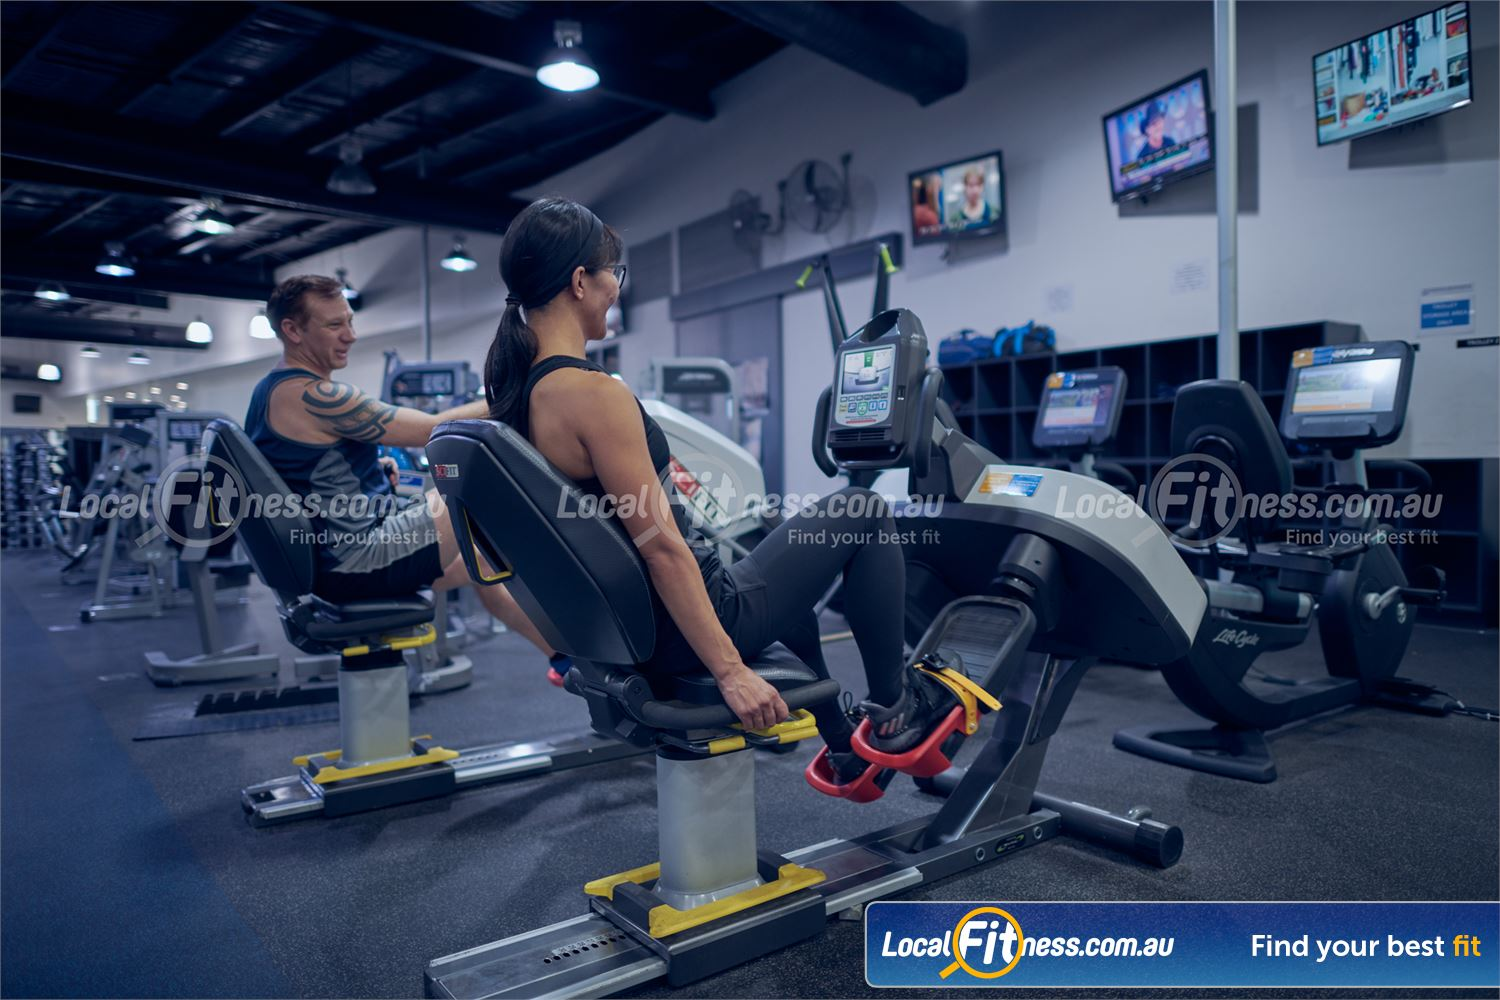 Maribyrnong Aquatic Centre Maribyrnong Our Maribyrnong gym includes state of the art cardio machines.